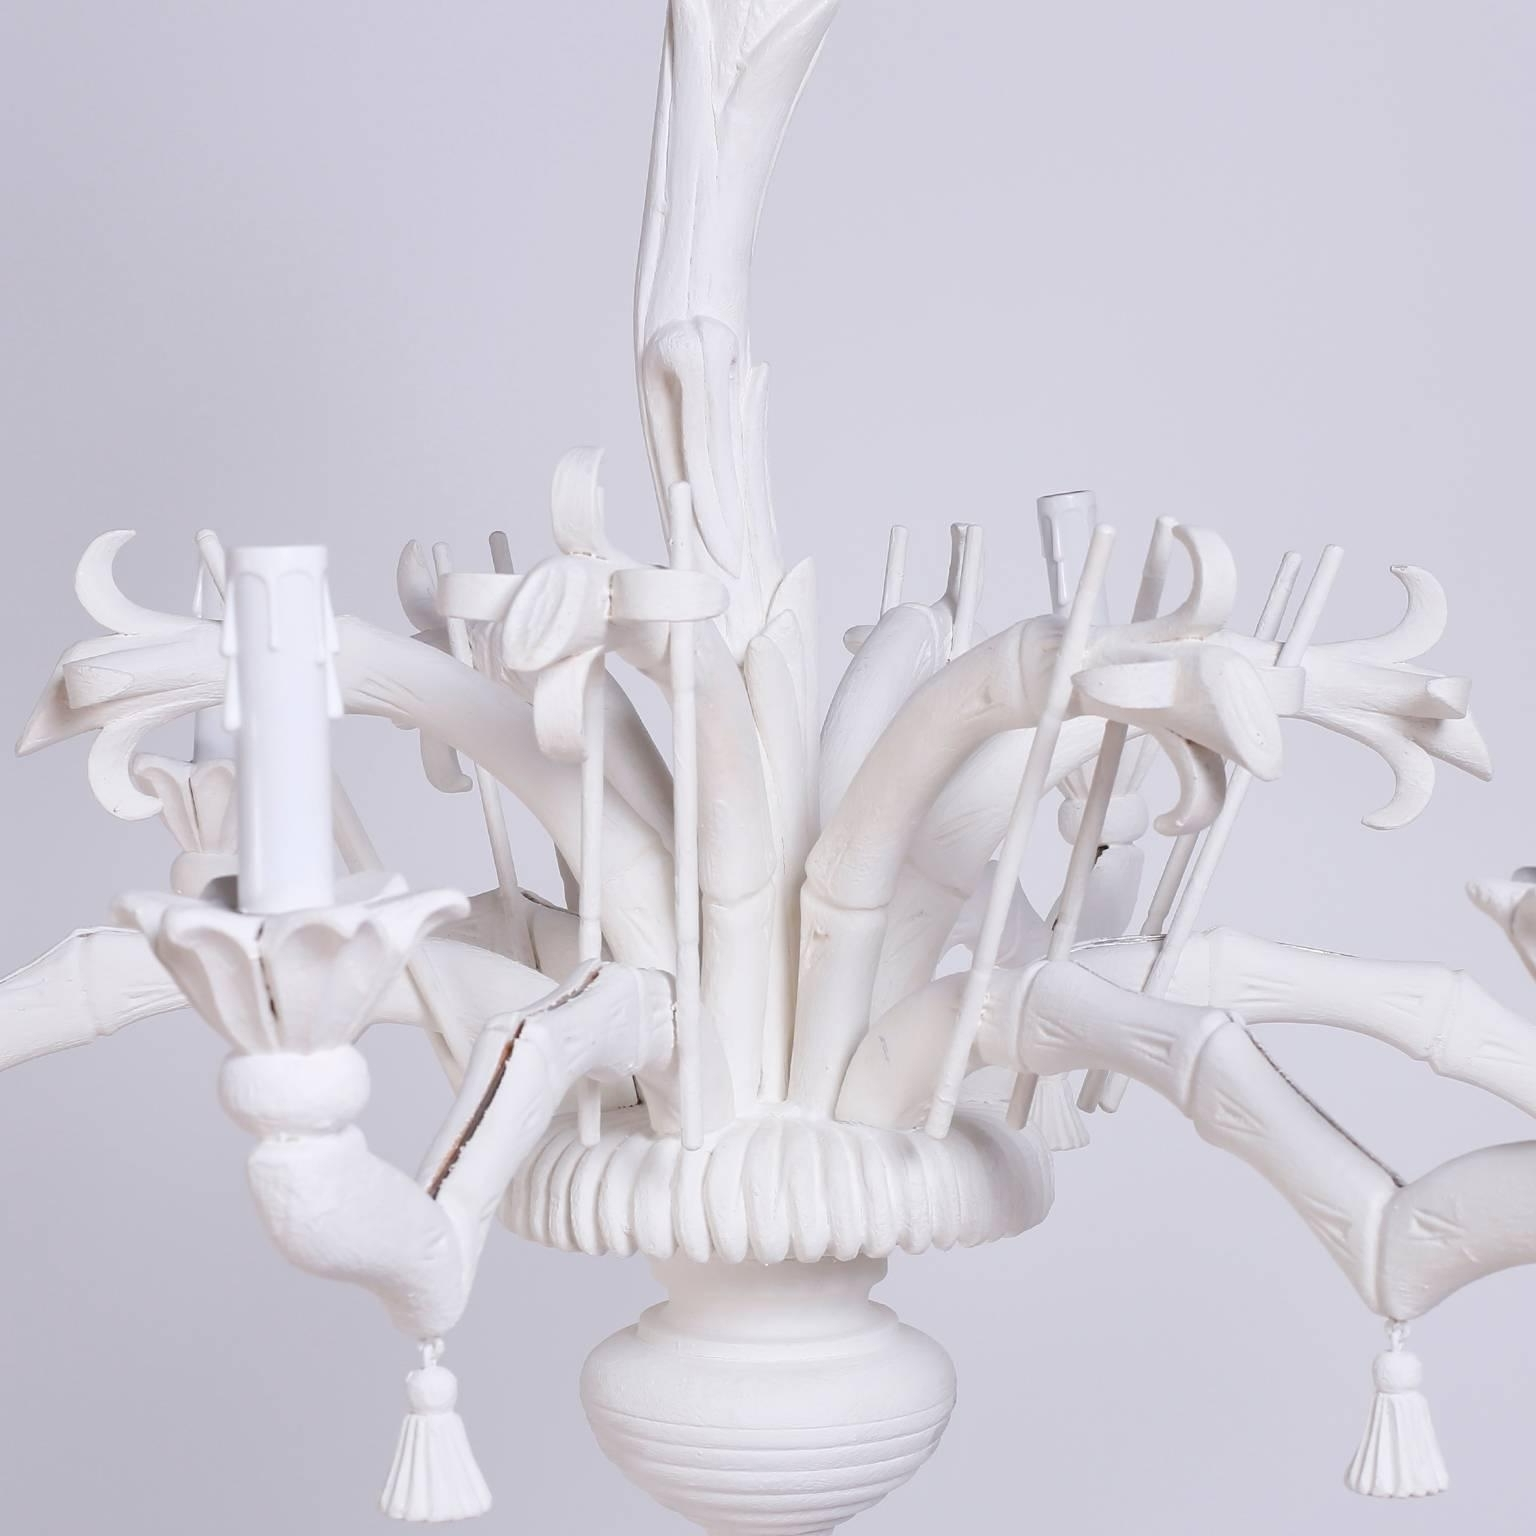 2019 White Palm Tree Chandelier At 1stdibs Inside Chinoiserie Chandeliers (View 16 of 20)